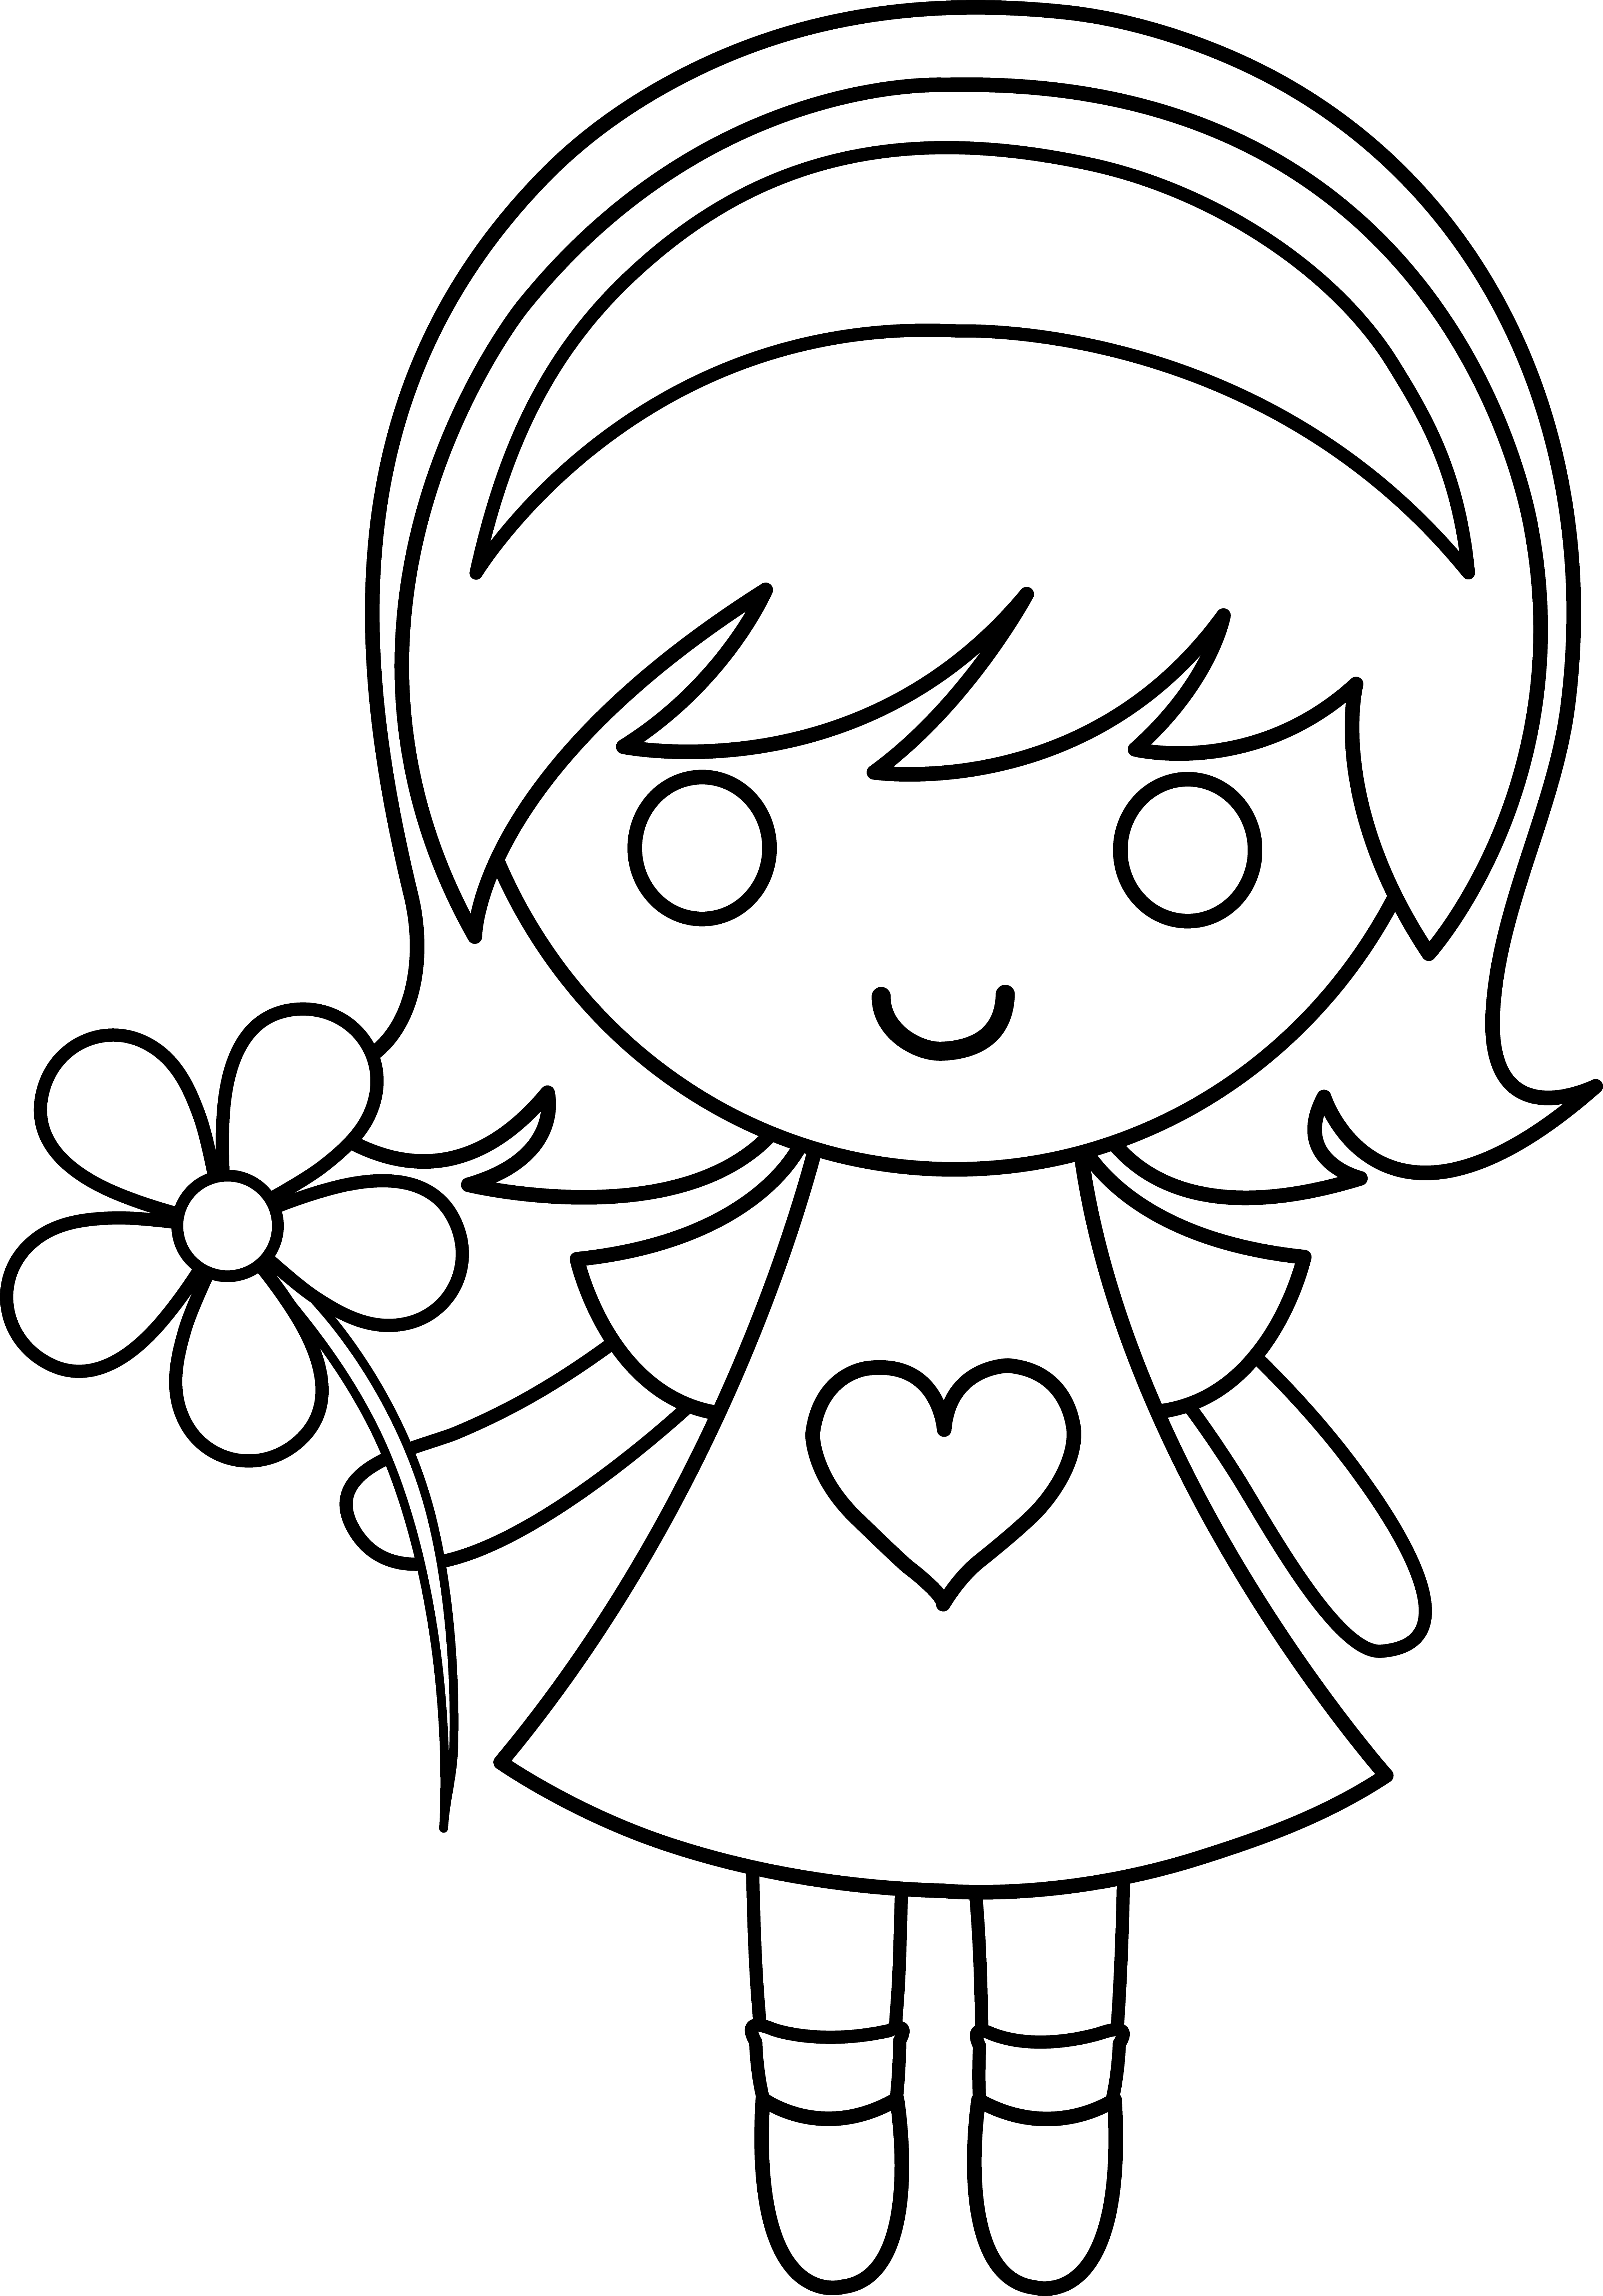 Daisy girl colorable line. Drawing clipart single woman